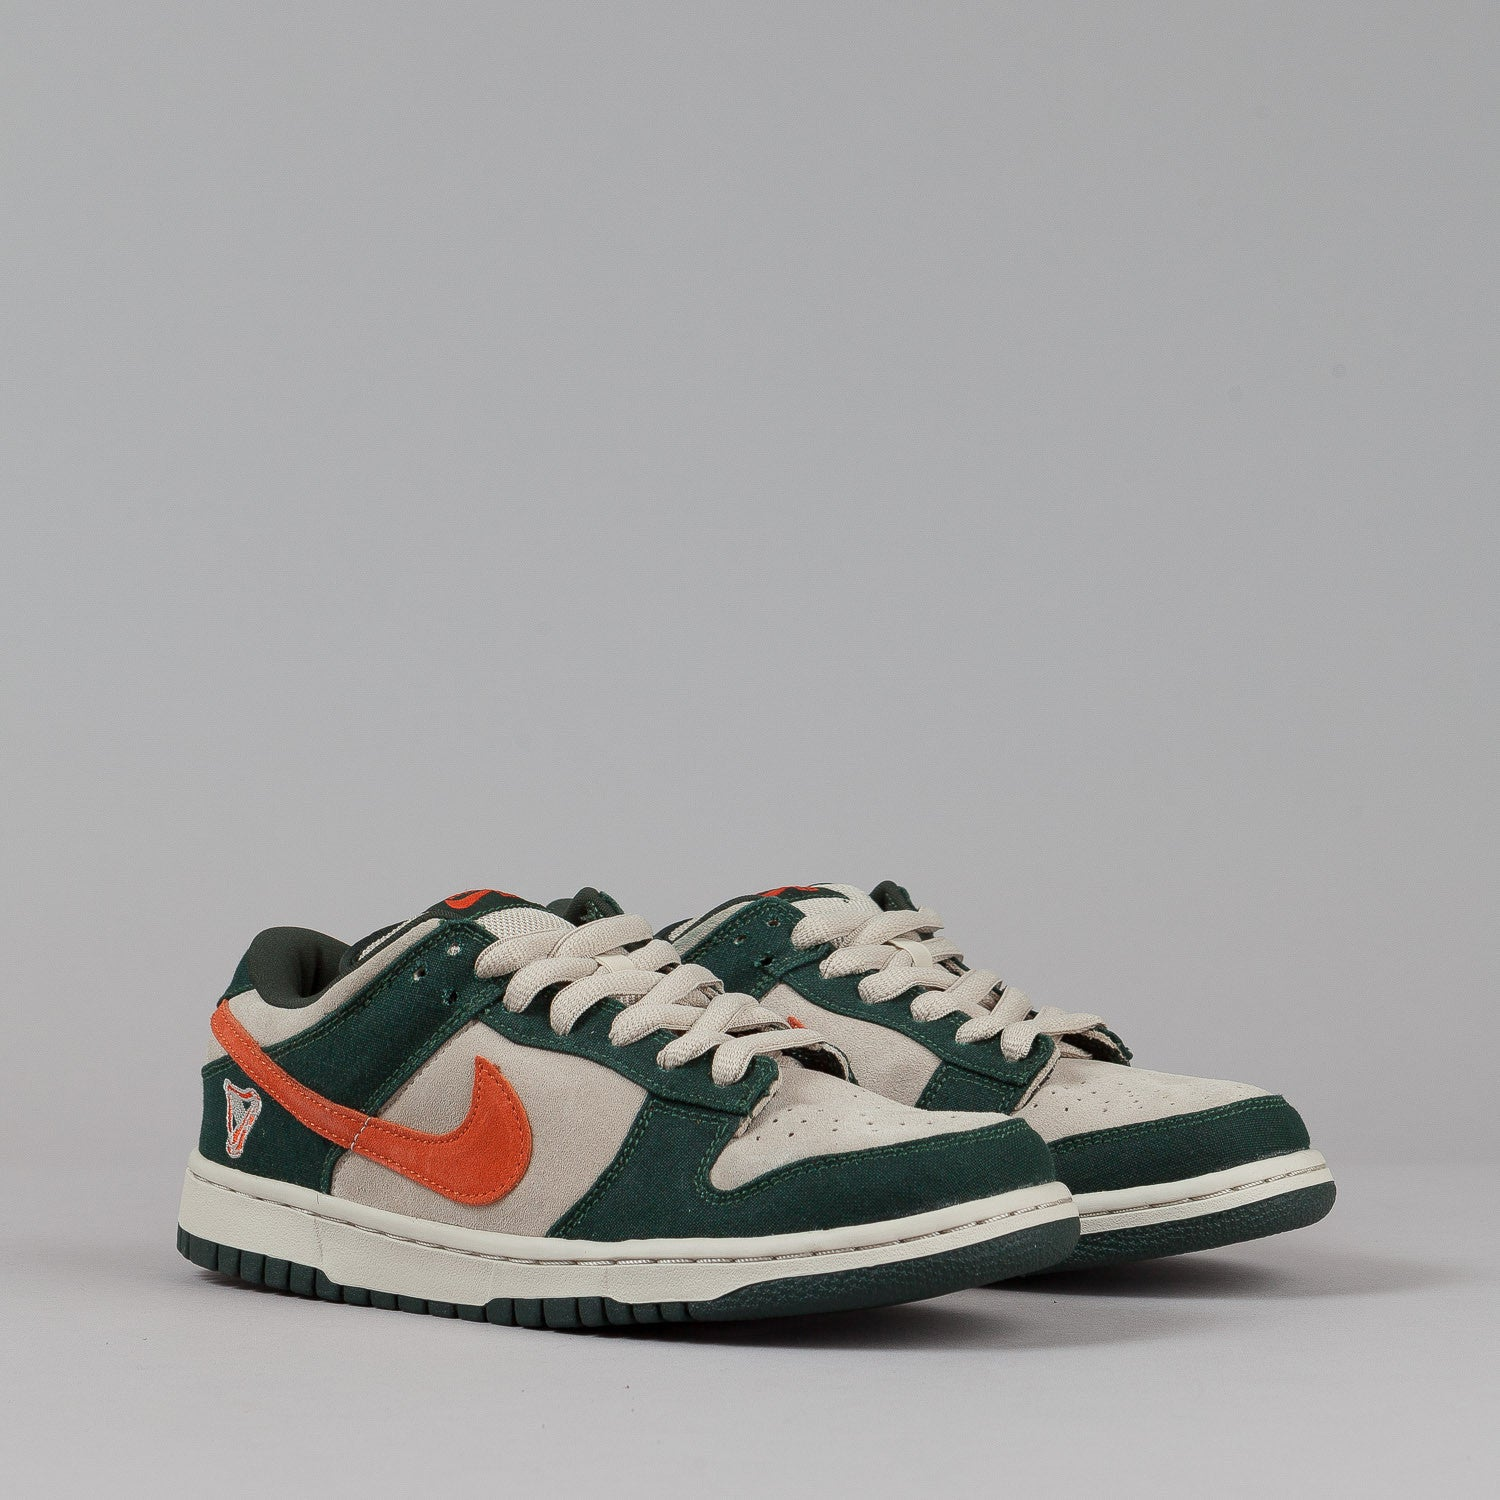 Nike SB Dunk Low Pro Shoes - Net / Deep Orange